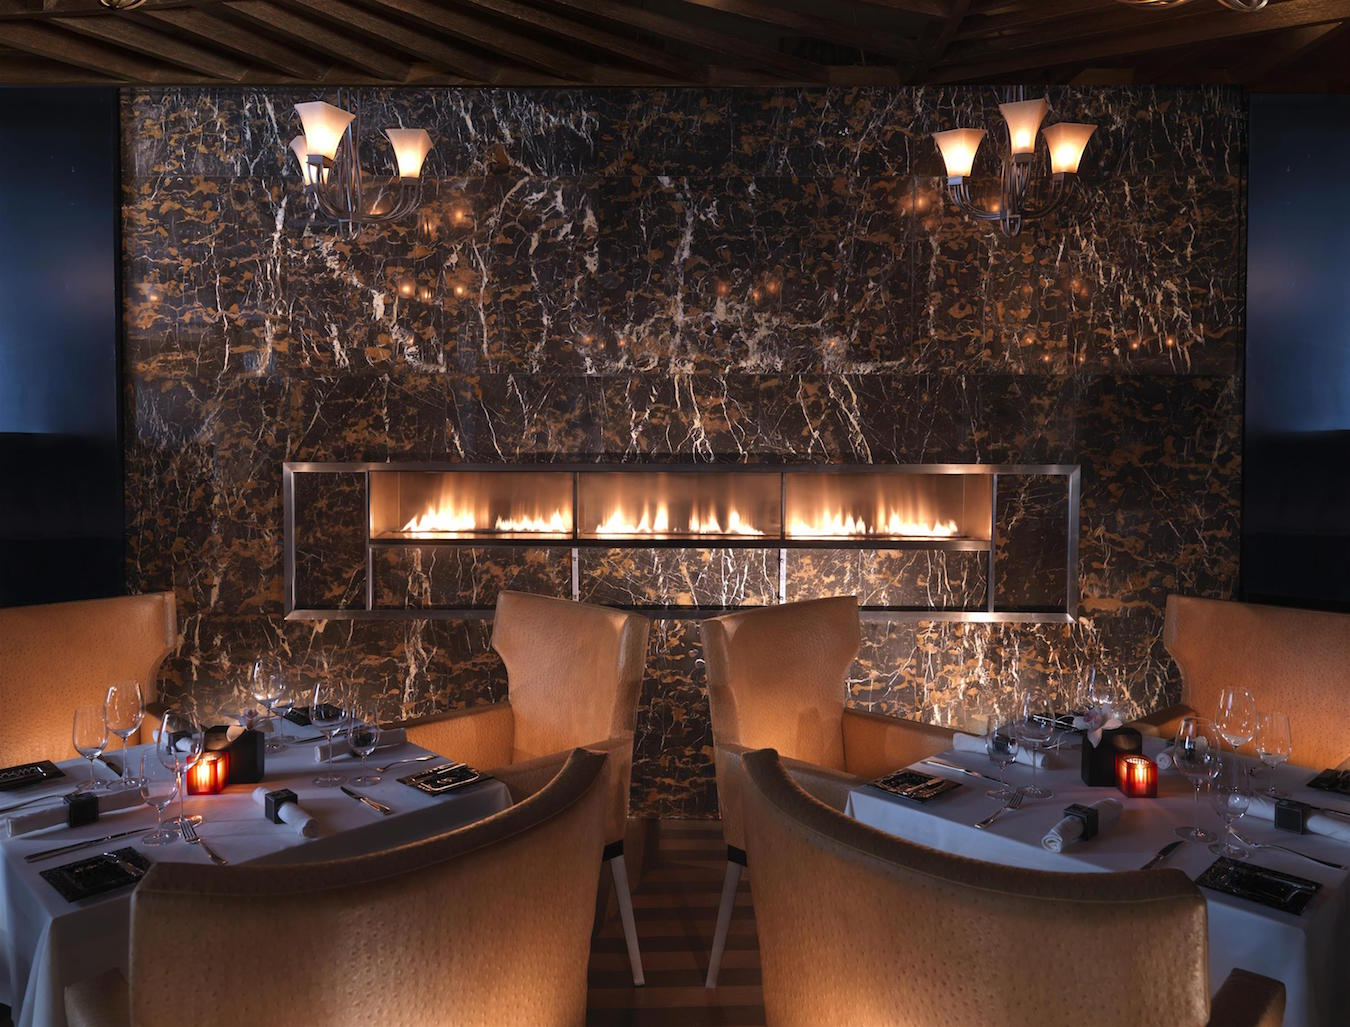 Decadent Dining at Marco Pierre White Steakhouse & Grill, Abu Dhabi